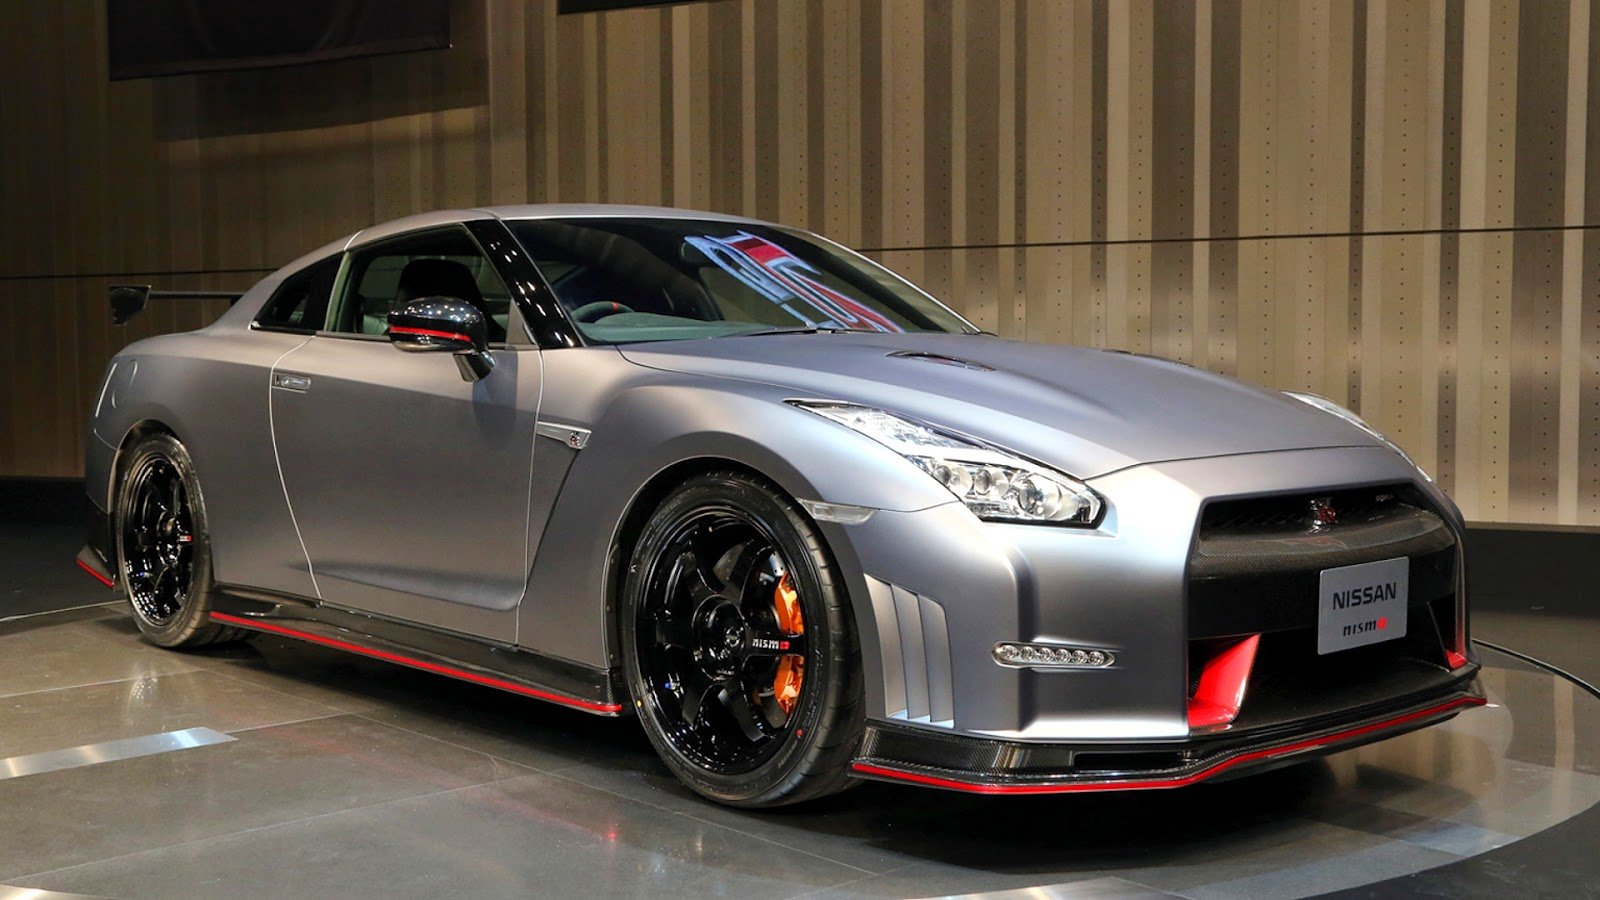 Latest Nissan Gtr Wallpaper Hd Hd Wallpaper With Cars Free Download